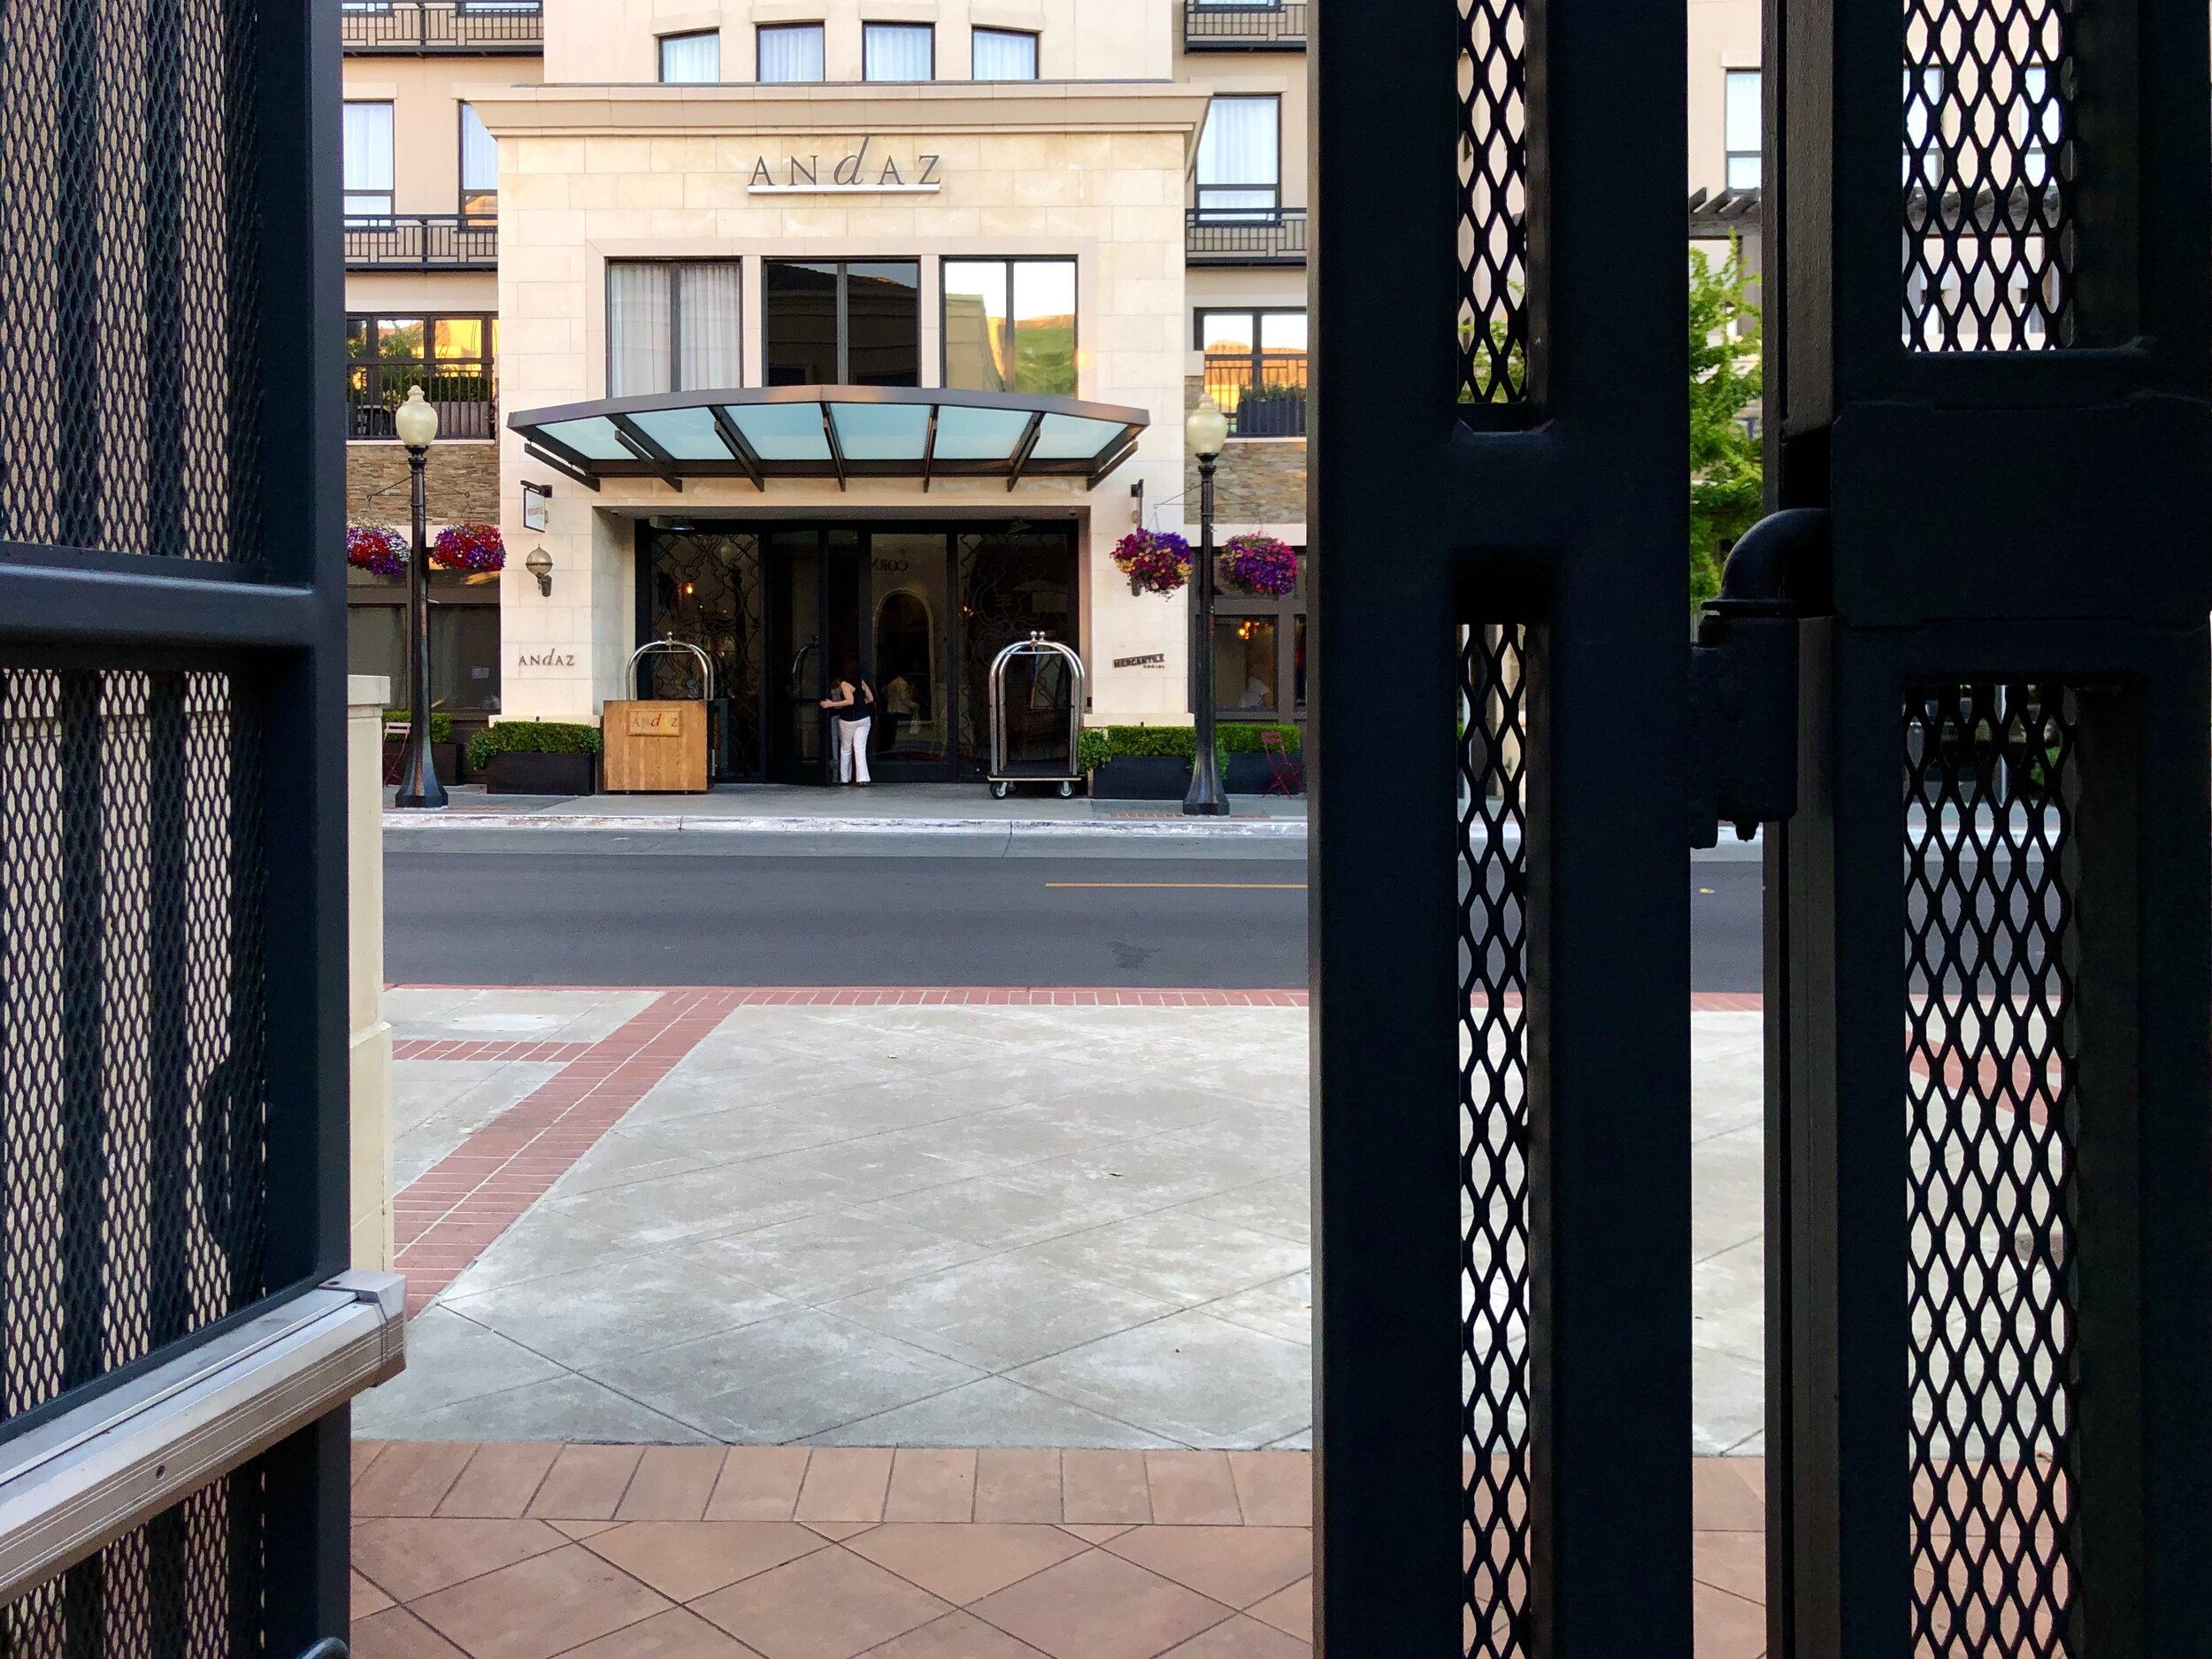 My wife and I recently stayed at the Andaz Napa for free (2019 © JOEL ANG PHOTOGRAPHY)